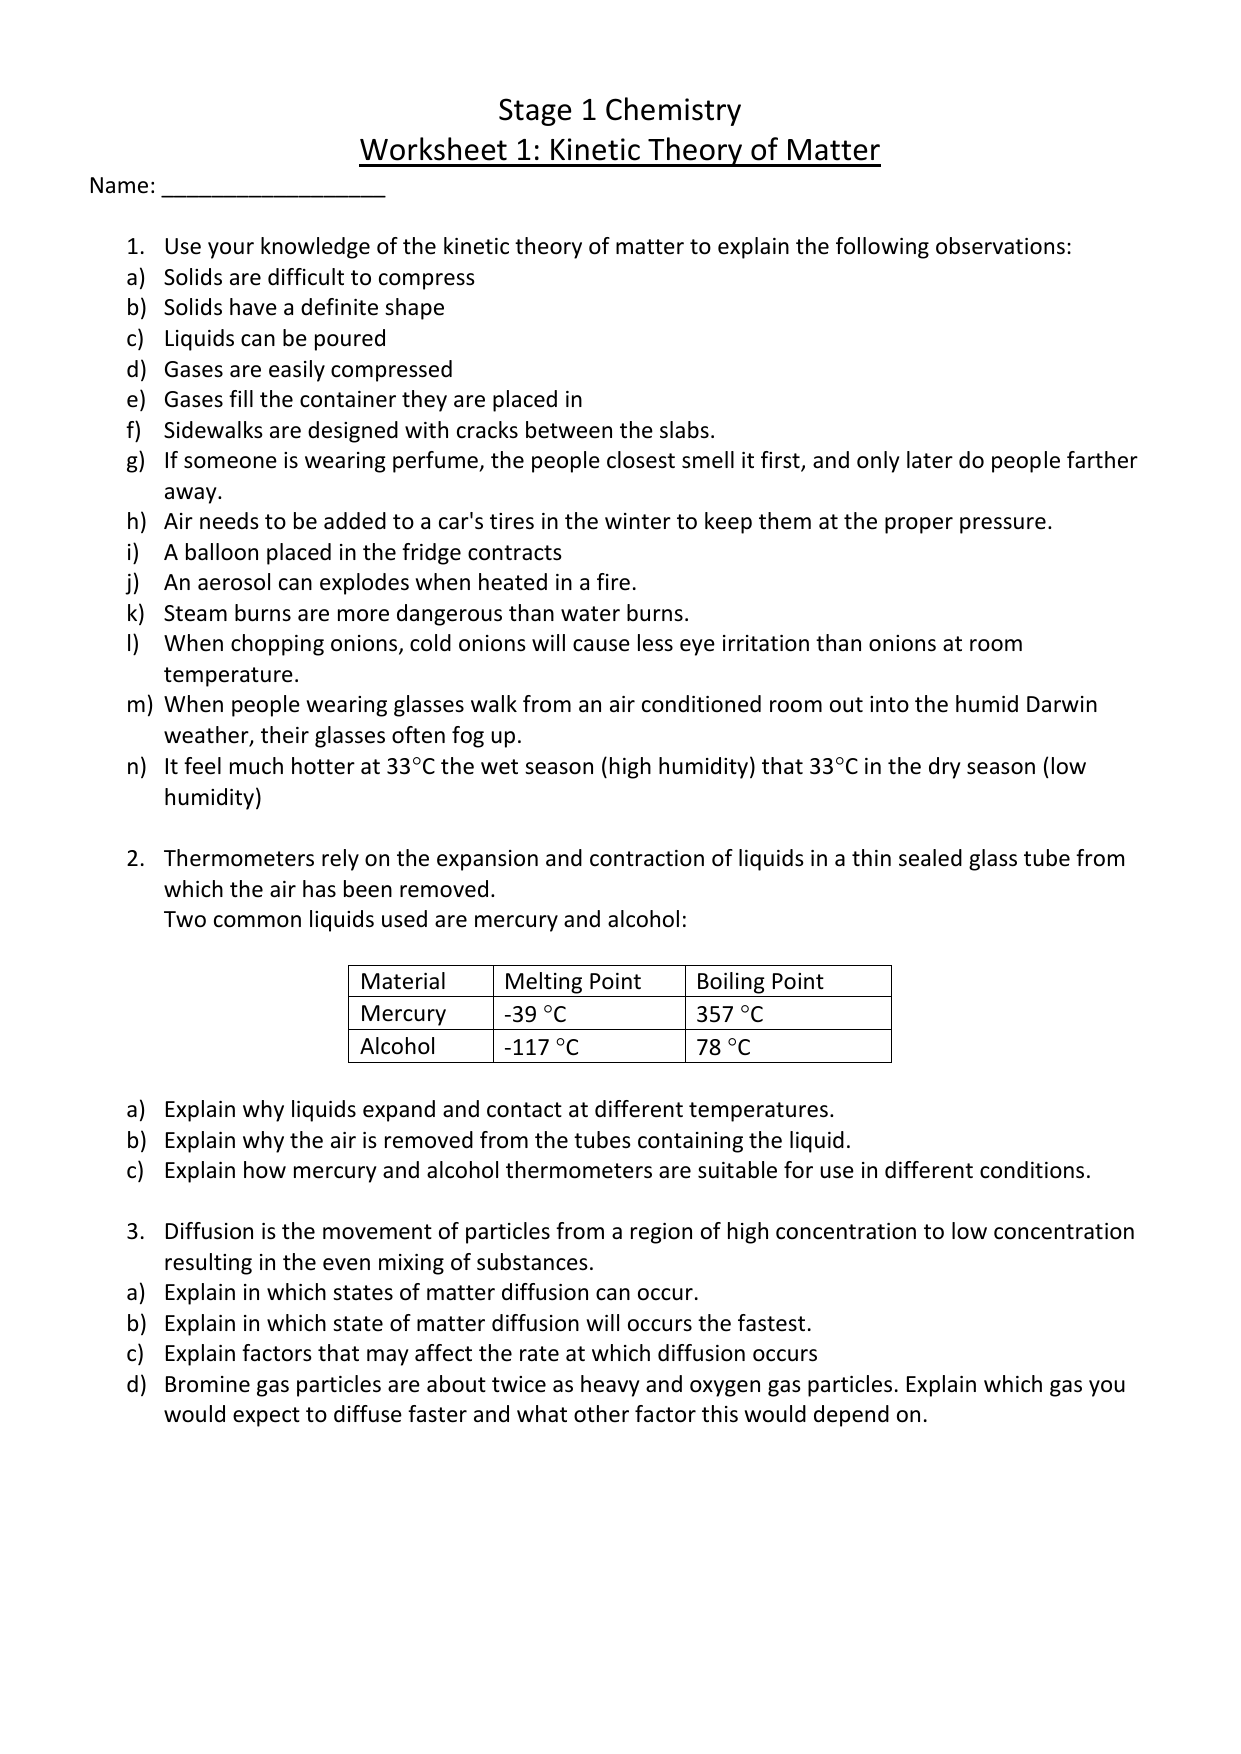 Kinetic Theory Of Matter Worksheet